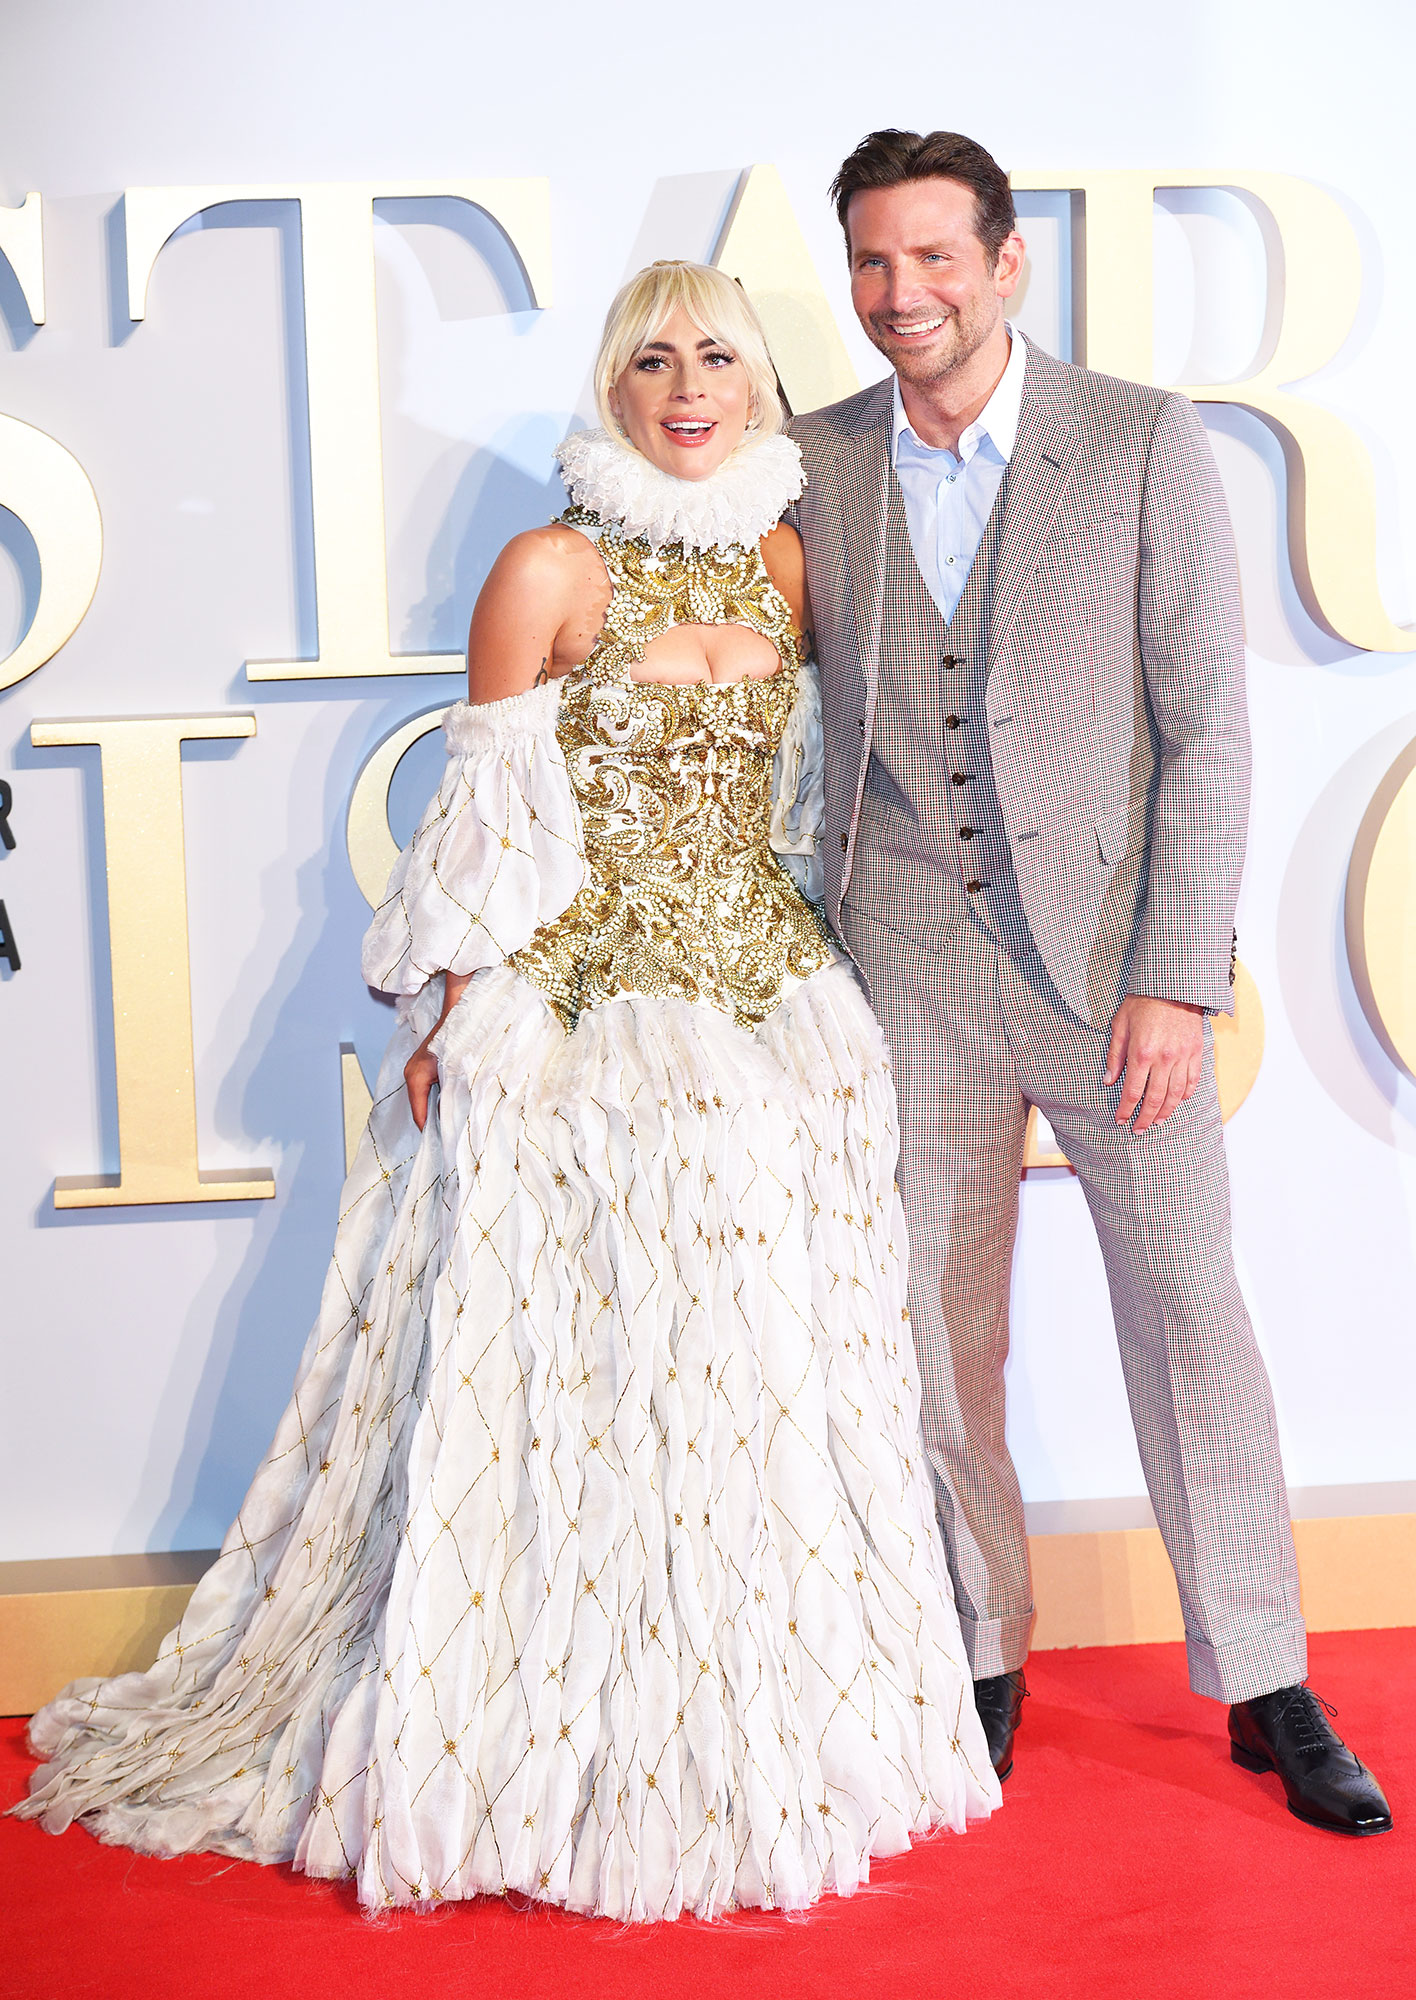 Lady Gaga and Bradley Cooper billboard awards - Lady Gaga and Bradley Cooper attend the UK premiere of 'A Star Is Born' at the Vue West End on September 27, 2018 in London, England.